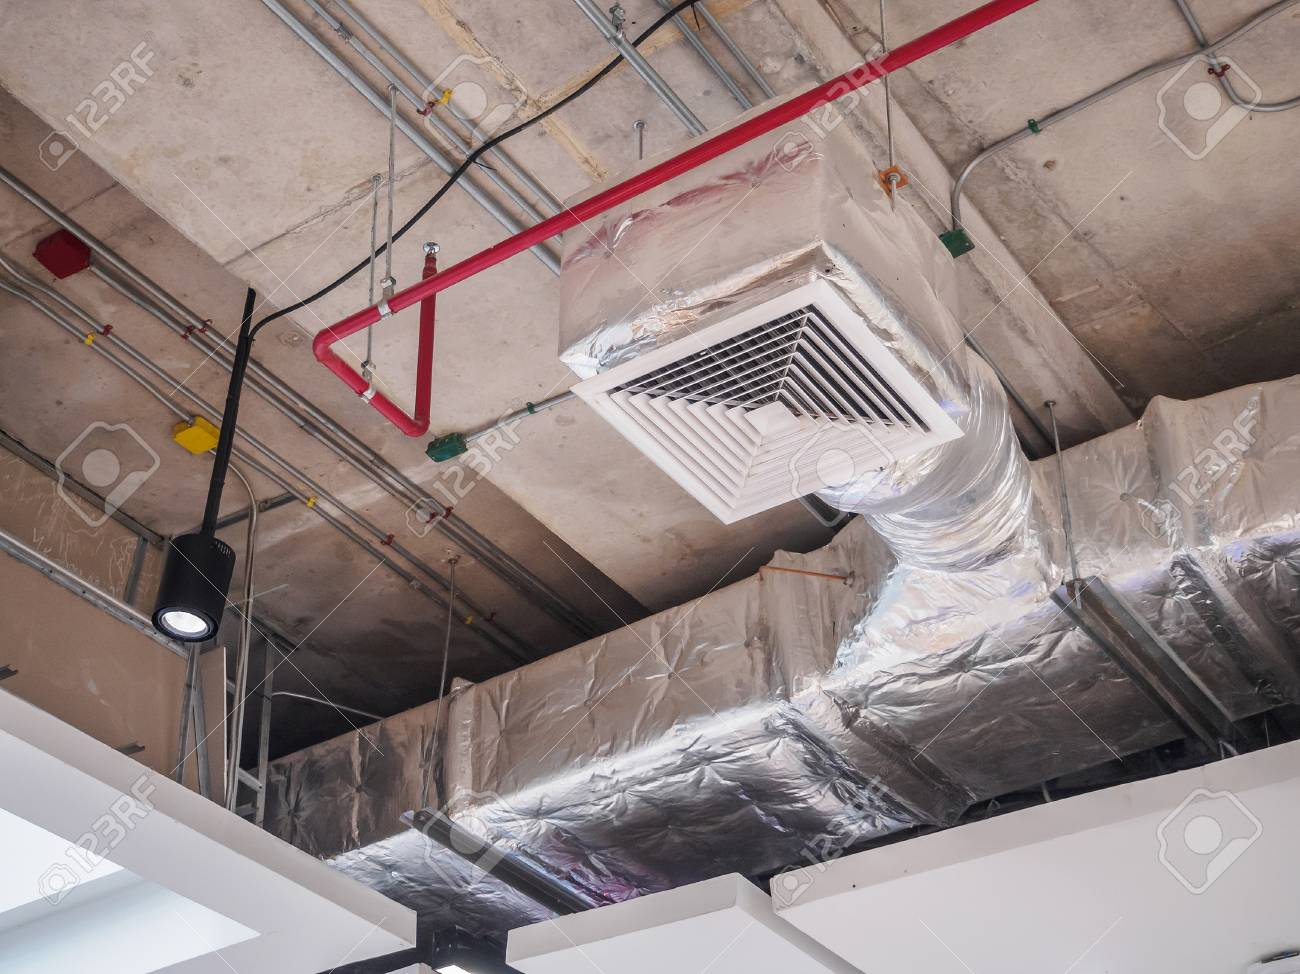 ventilation system ceiling air duct in large shopping mall stock